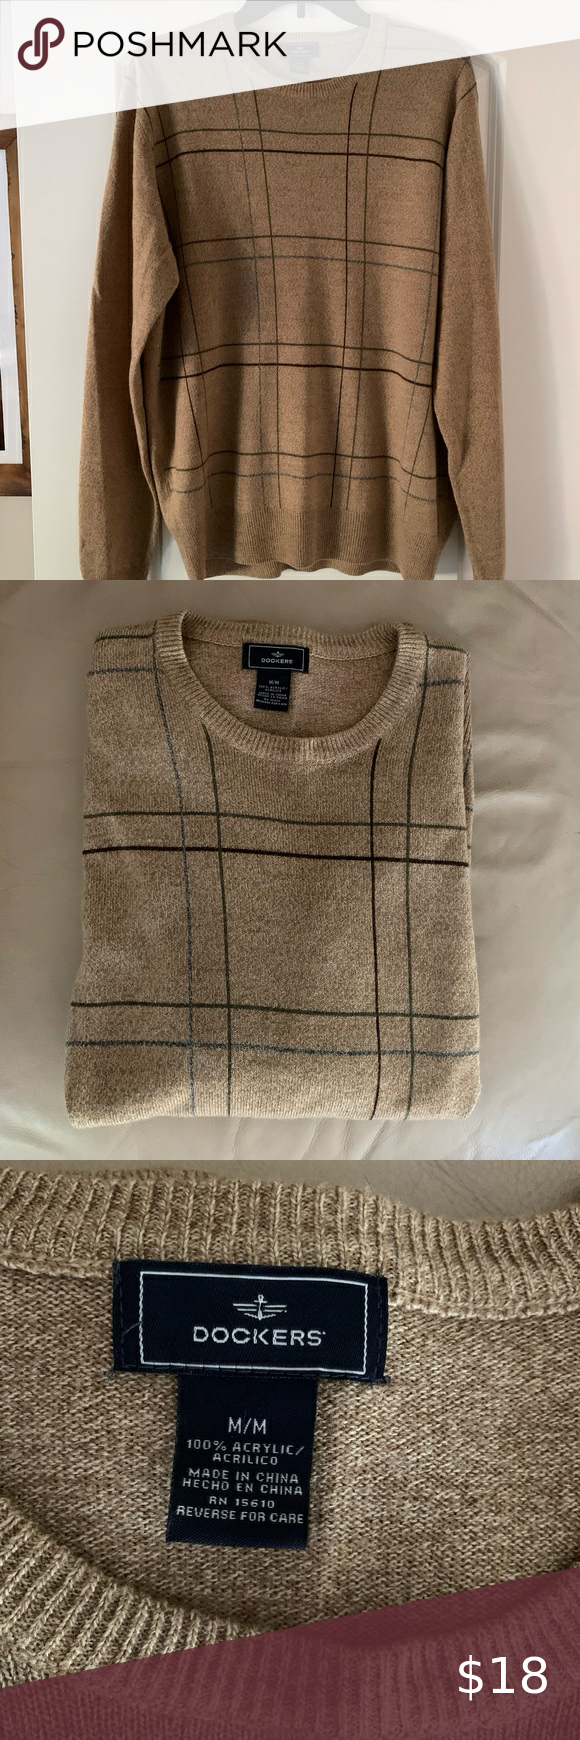 DOCKERS pullover sweater in 2020 Pullover sweaters